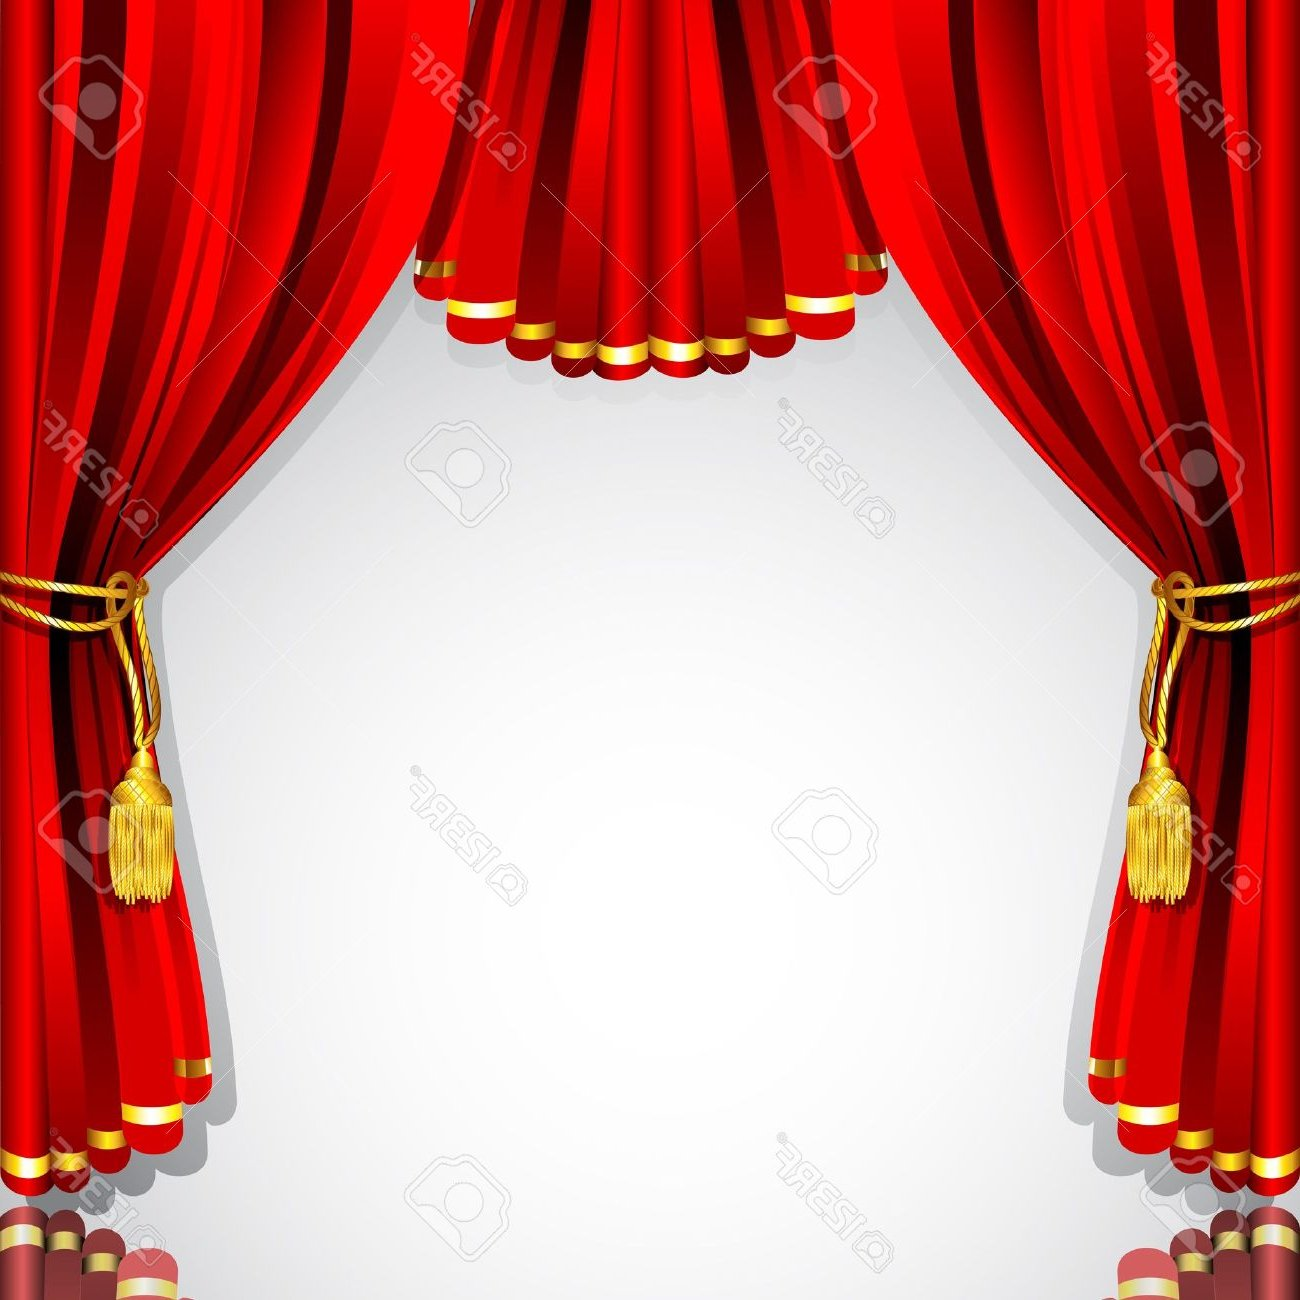 Actor clipart background. Stage many interesting cliparts